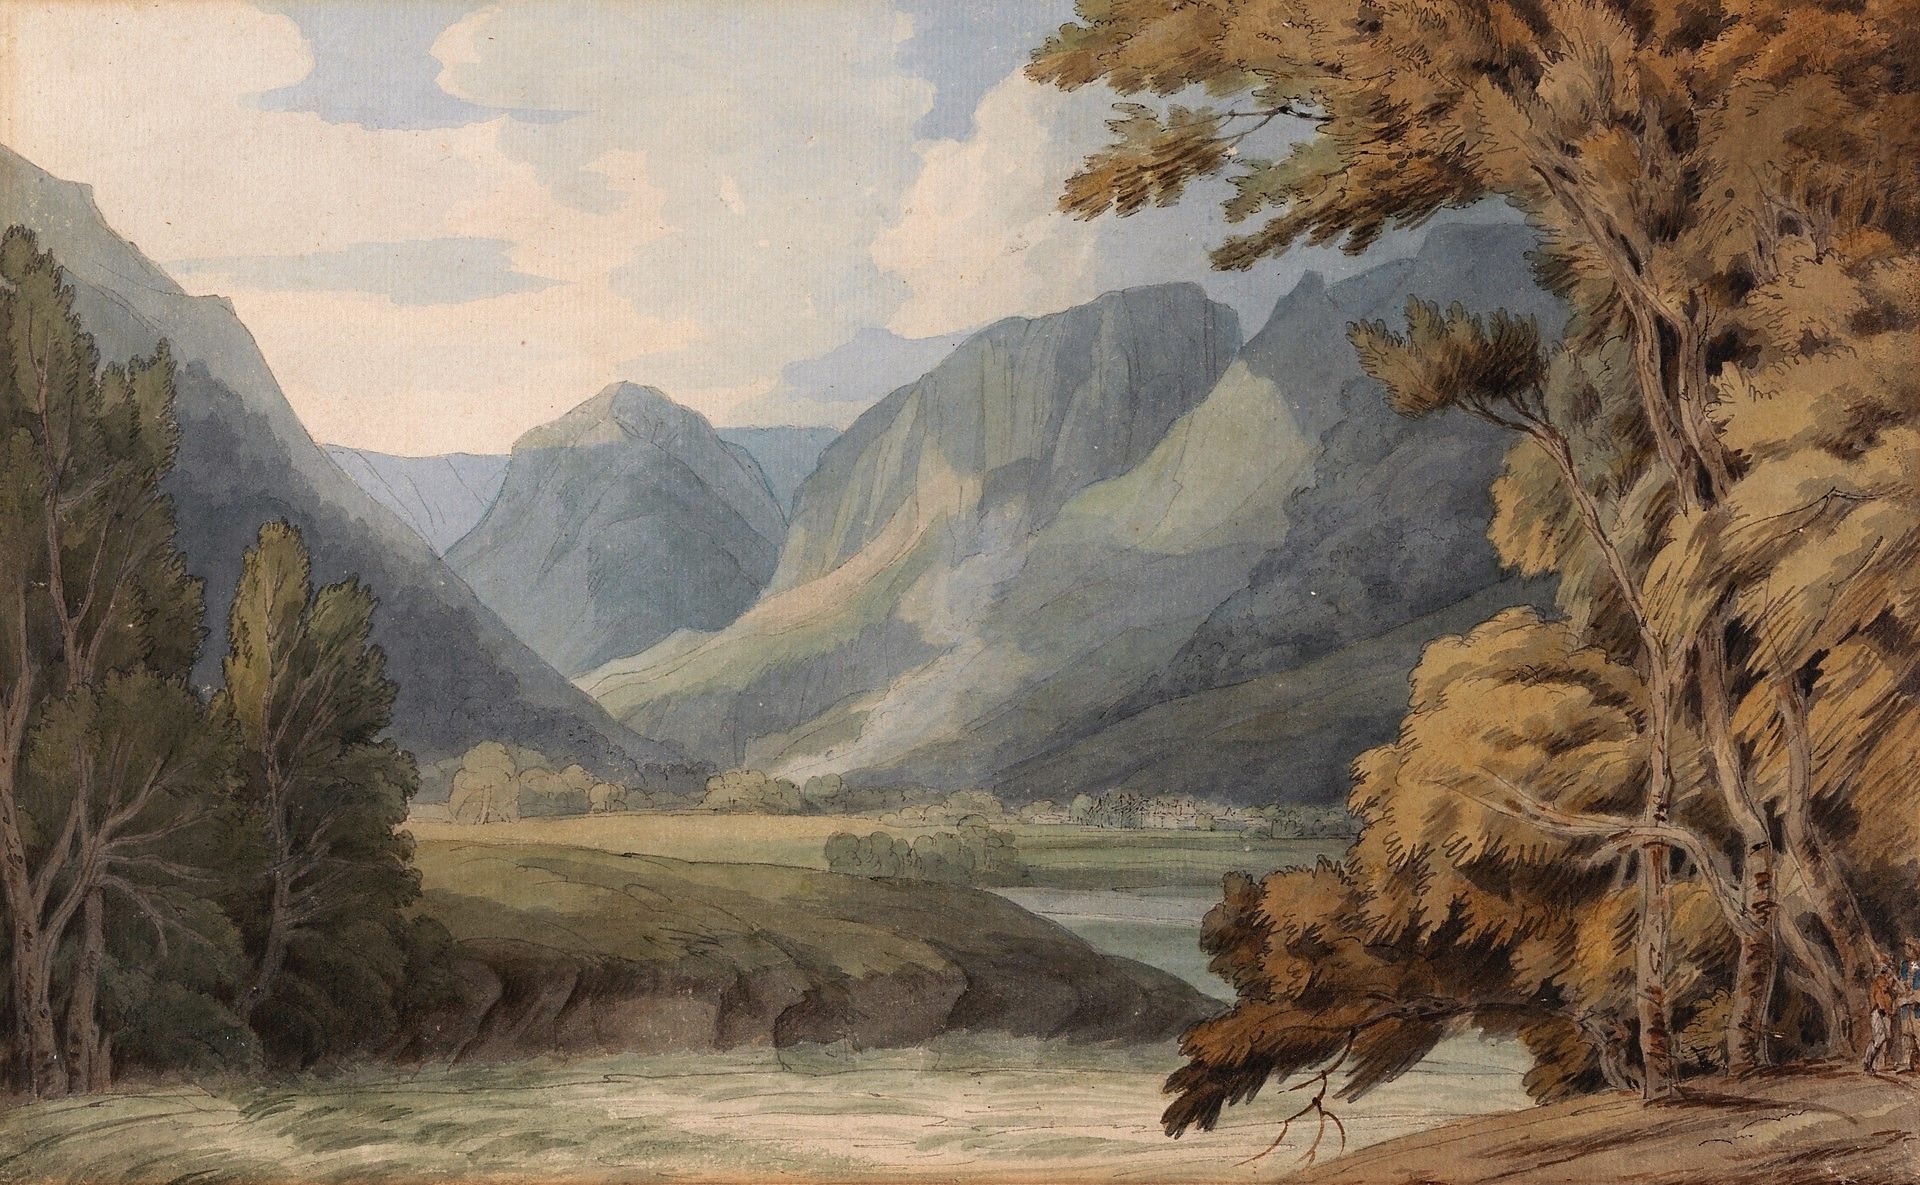 View in Borrowdale of Eagle Crag and Rosthwaite | Francis Towne | Oil Painting